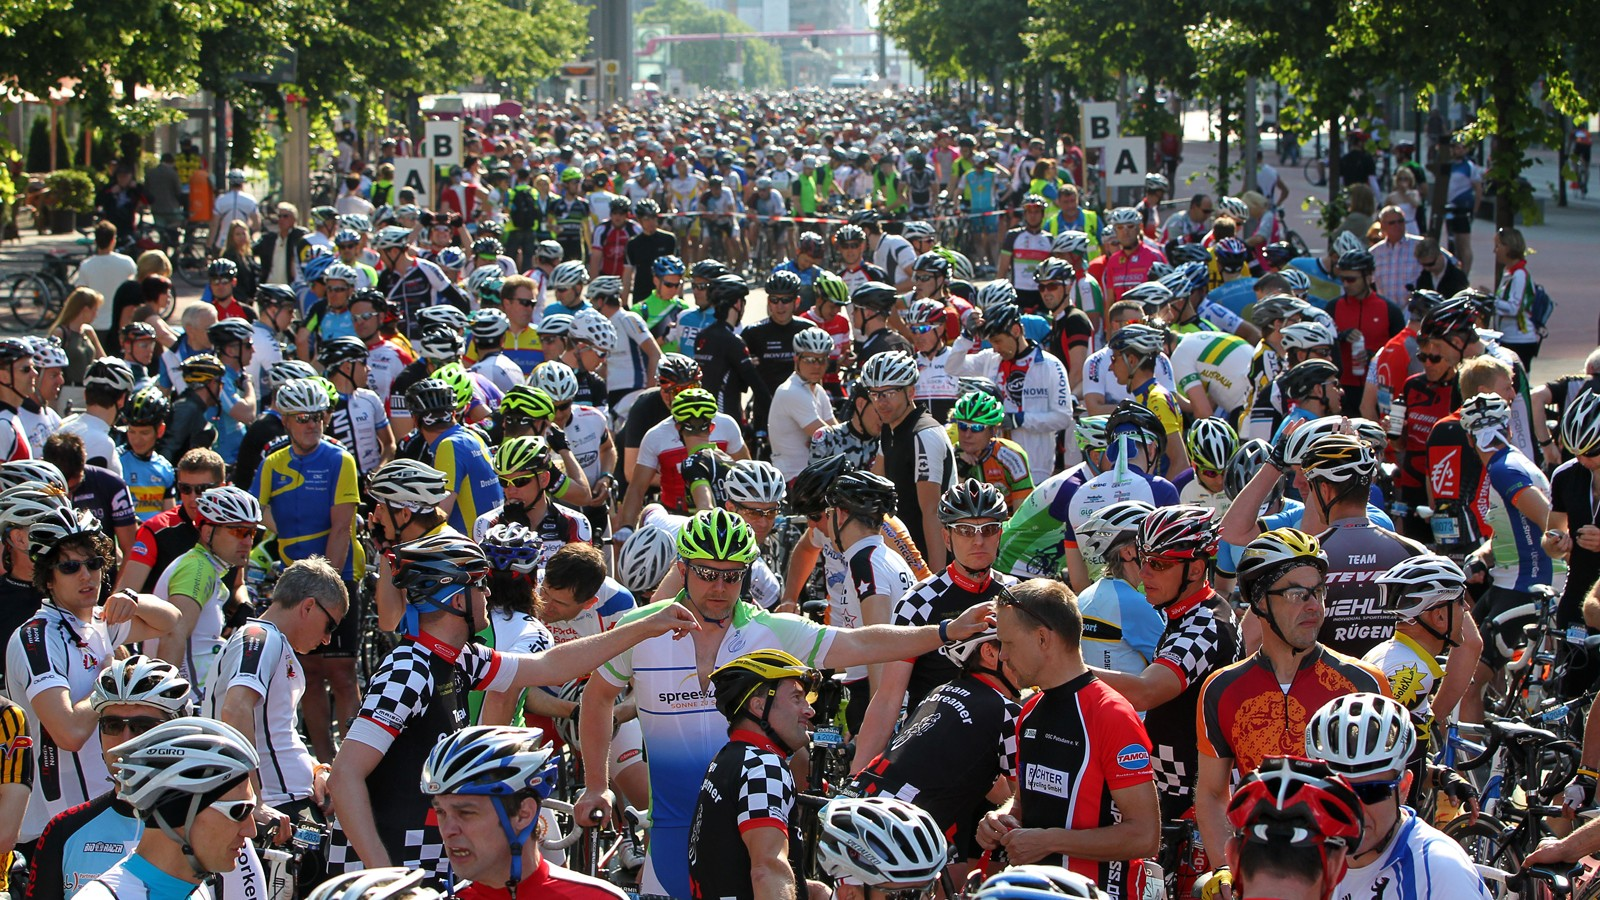 Like Velothon Berlin, the streets of Cardiff will be flooded by cyclists next year